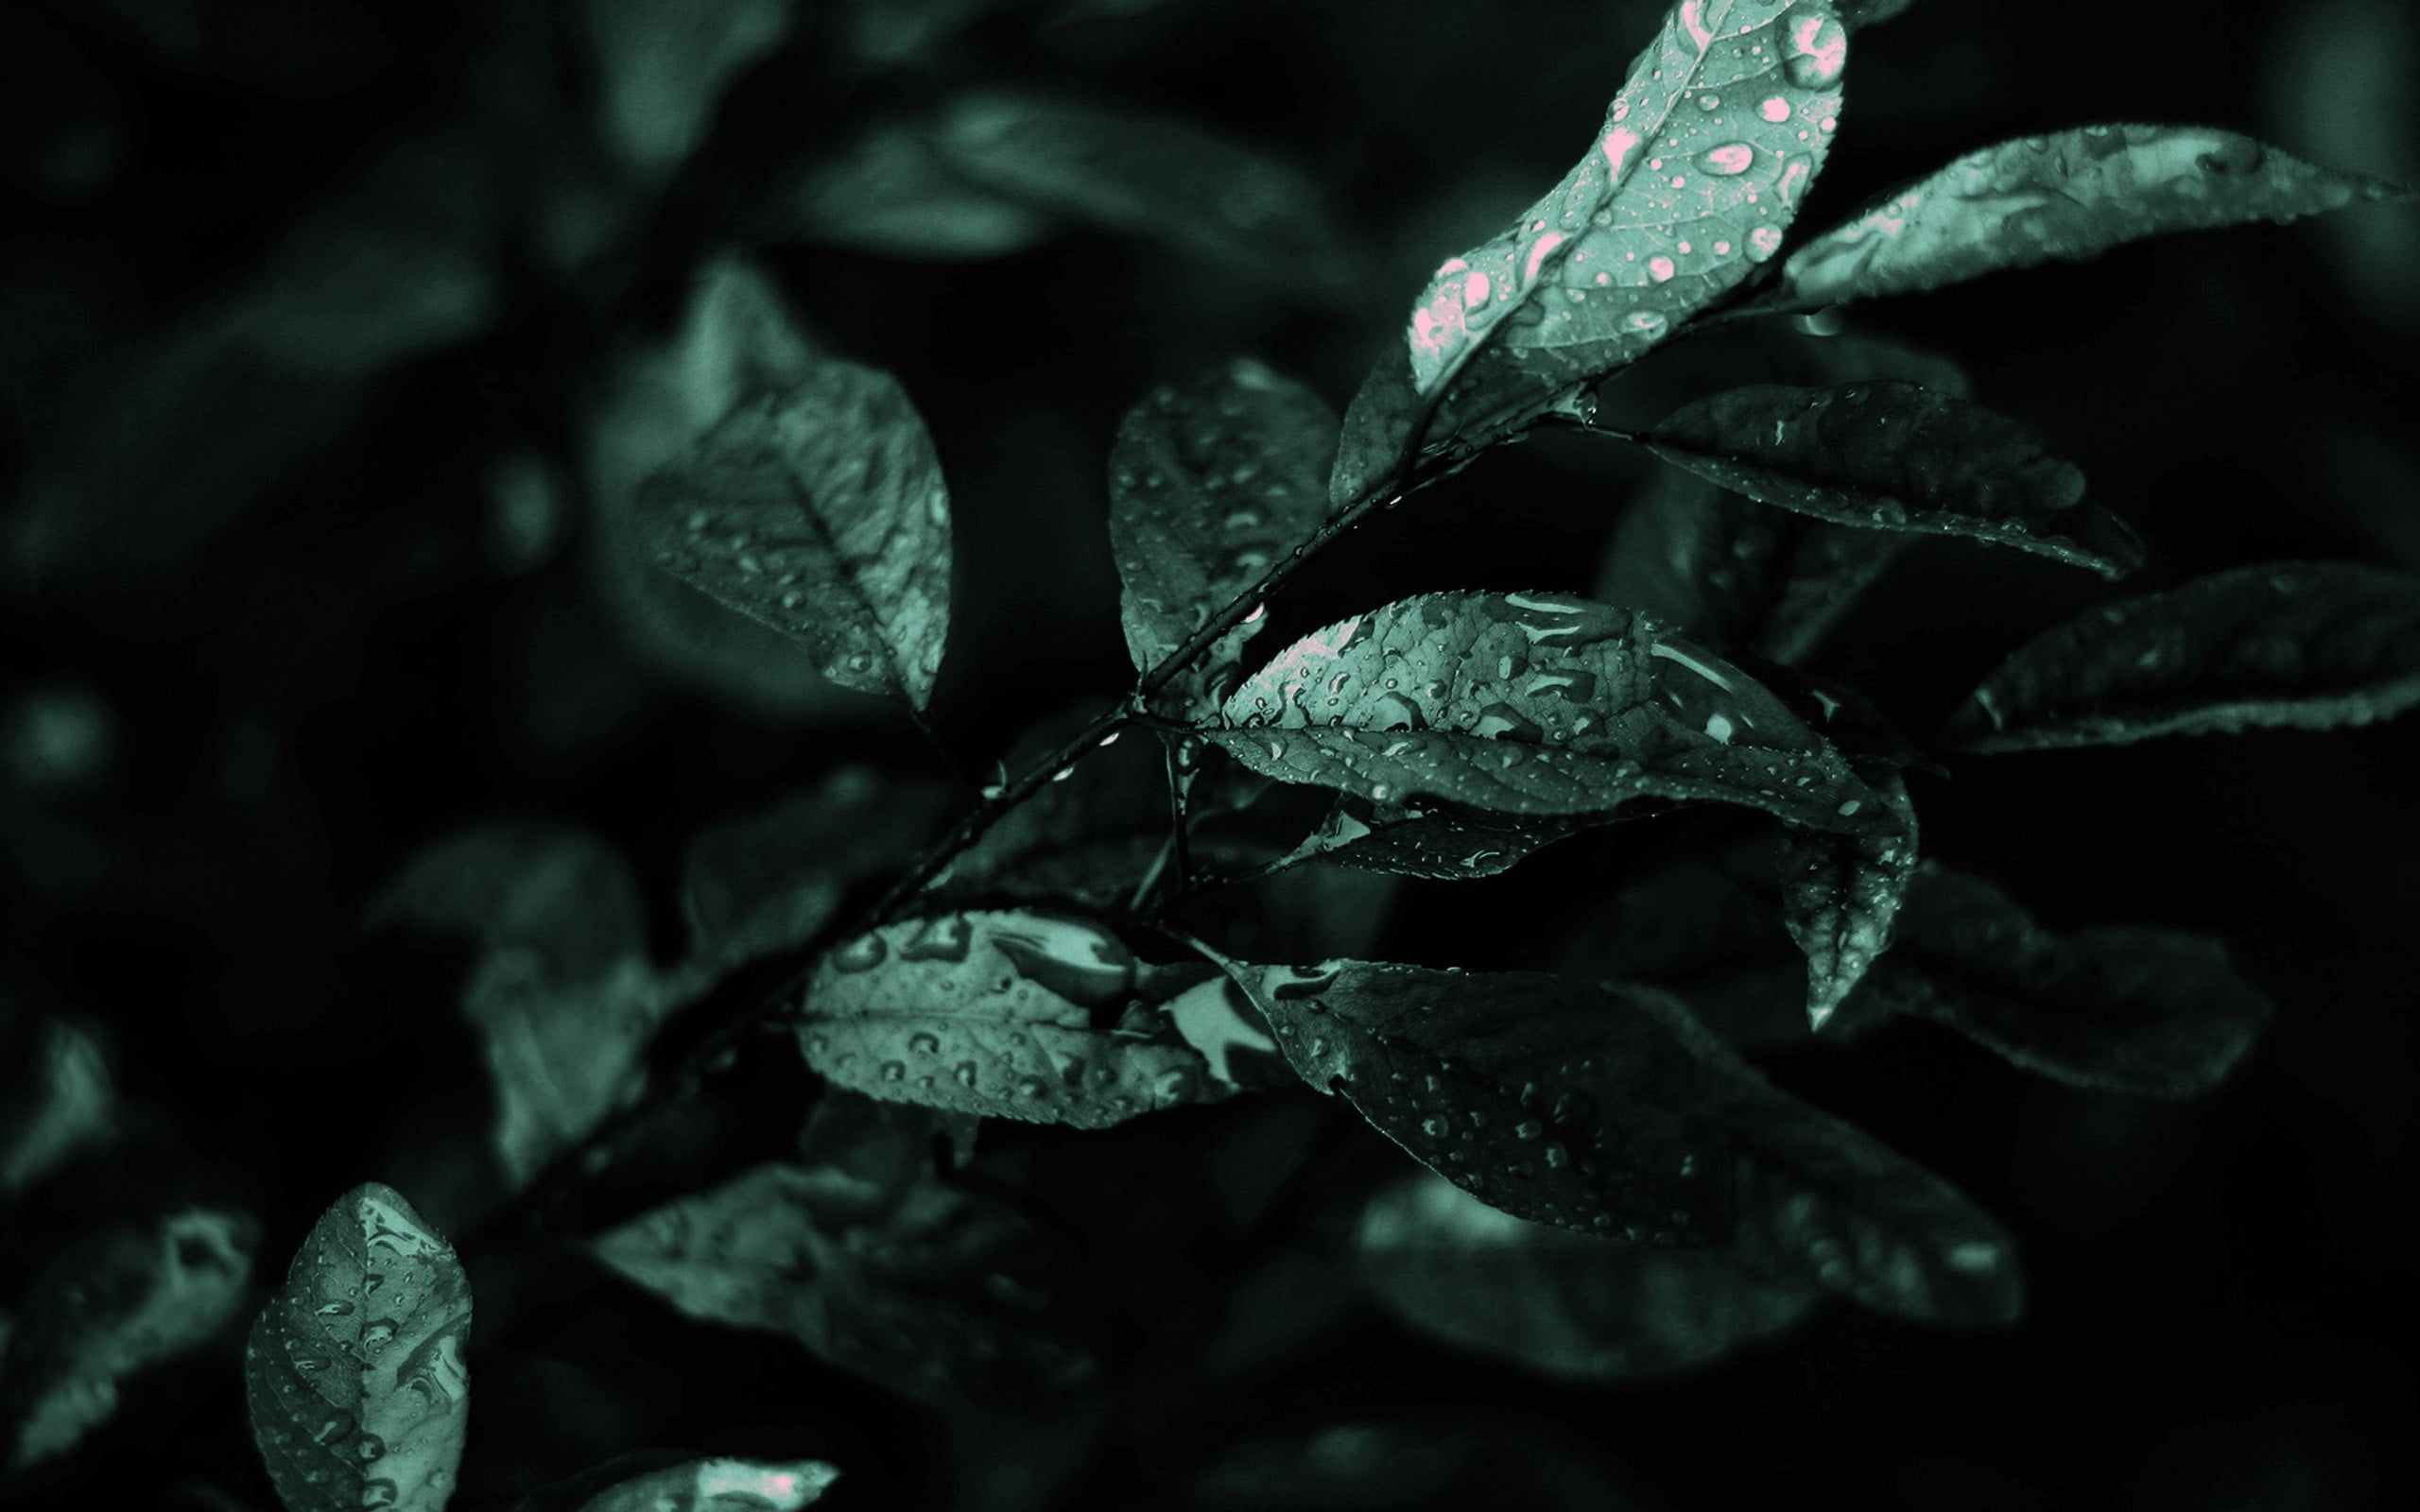 Water Droplets On Green Leaves Nature Flowers Water Drops Leaves Plants 2k Wallpaper Hdwallpaper D In 2021 Green Nature Green Nature Wallpaper Nature Wallpaper